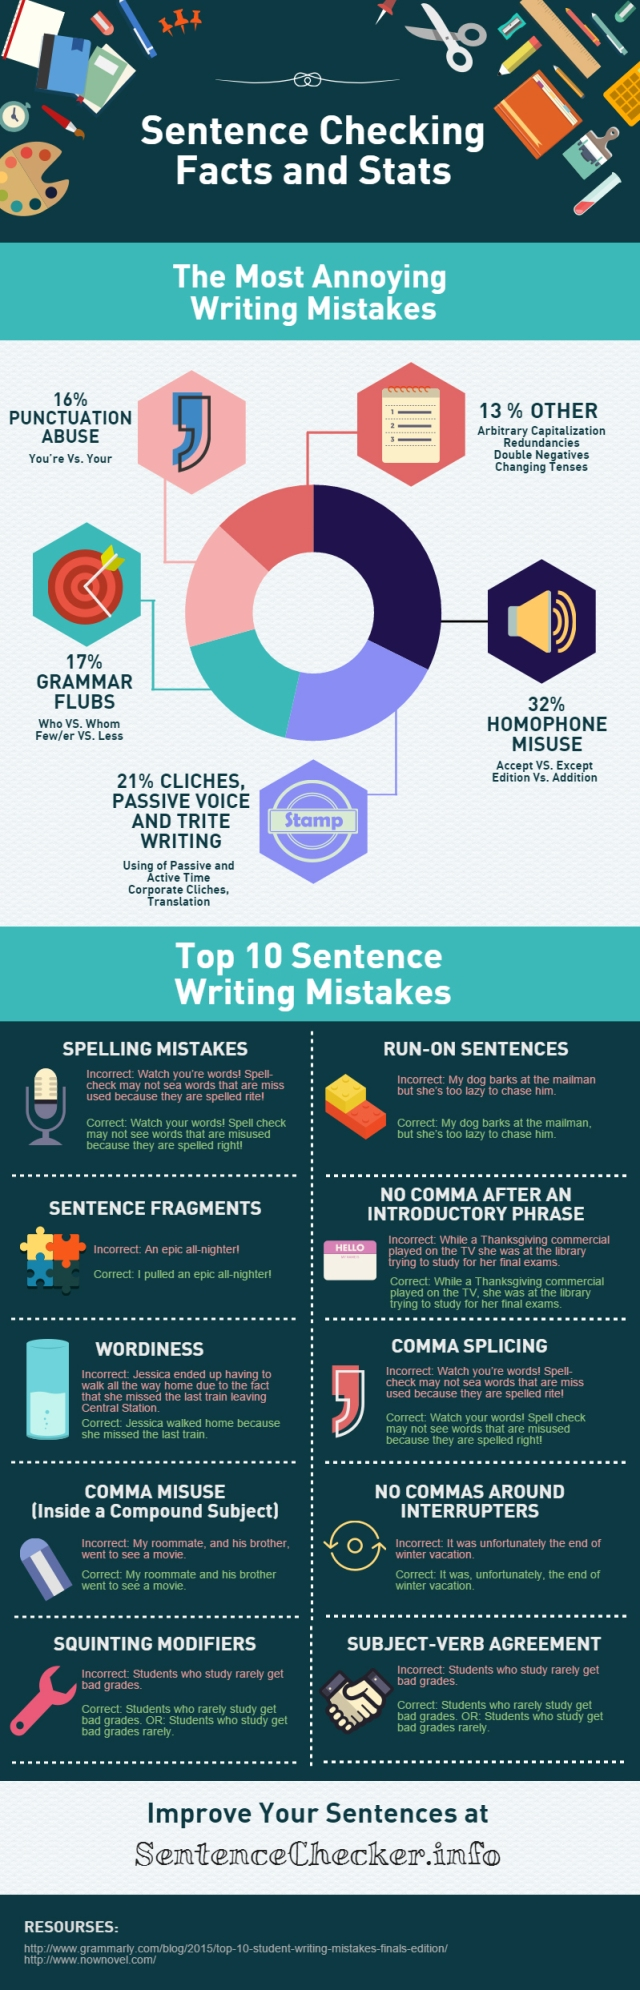 10 Annoying Writing Mistakes You Make Online & How to Fix Them